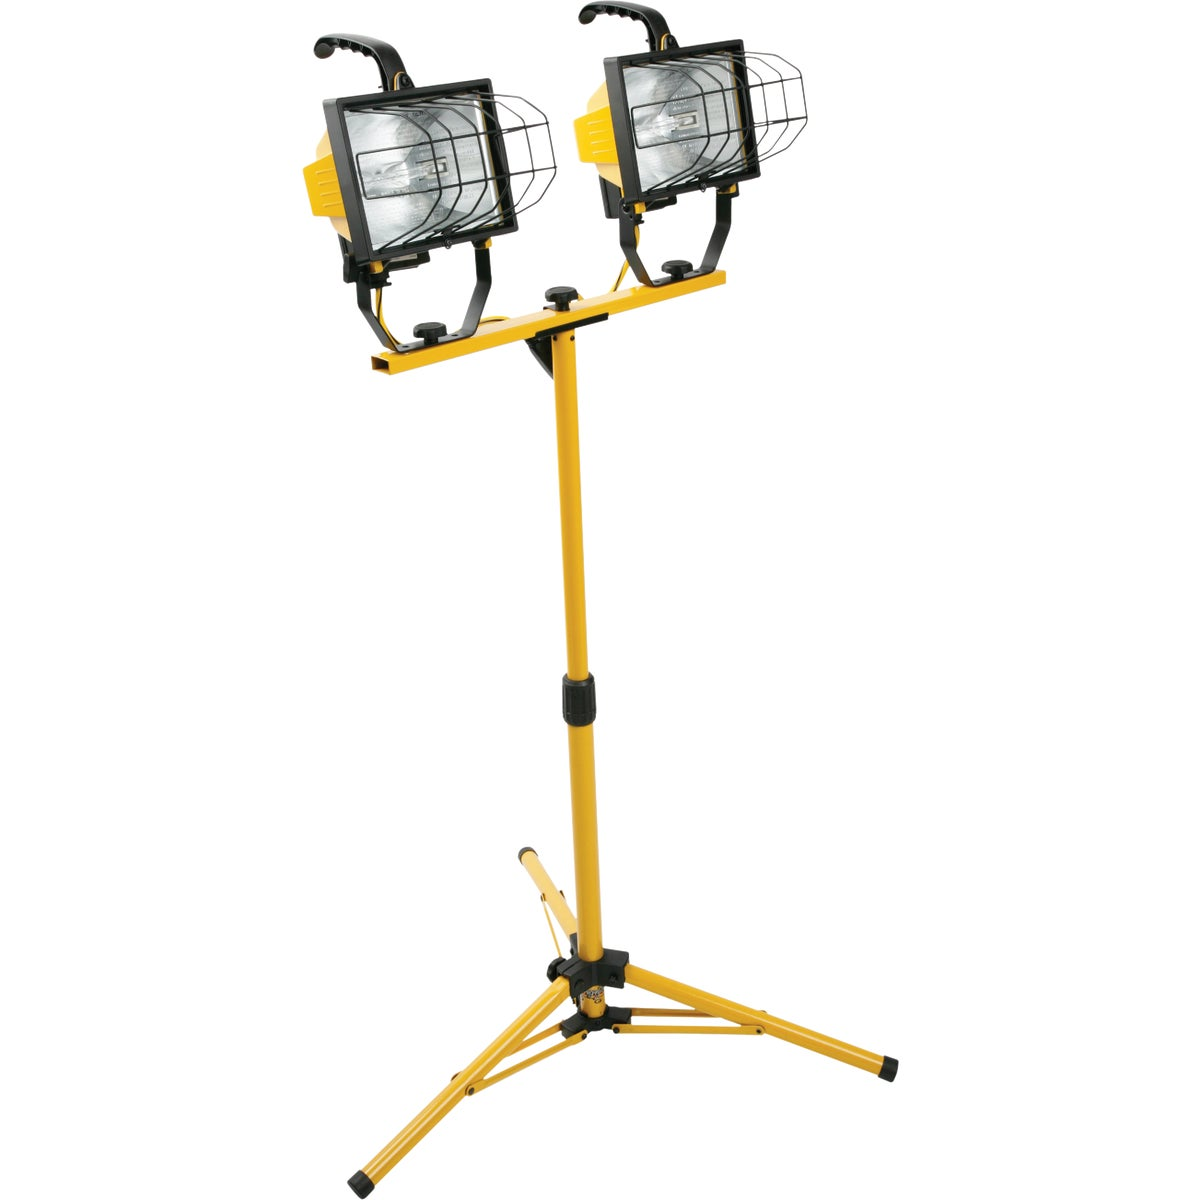 PORTABLE HALGN WORKLIGHT